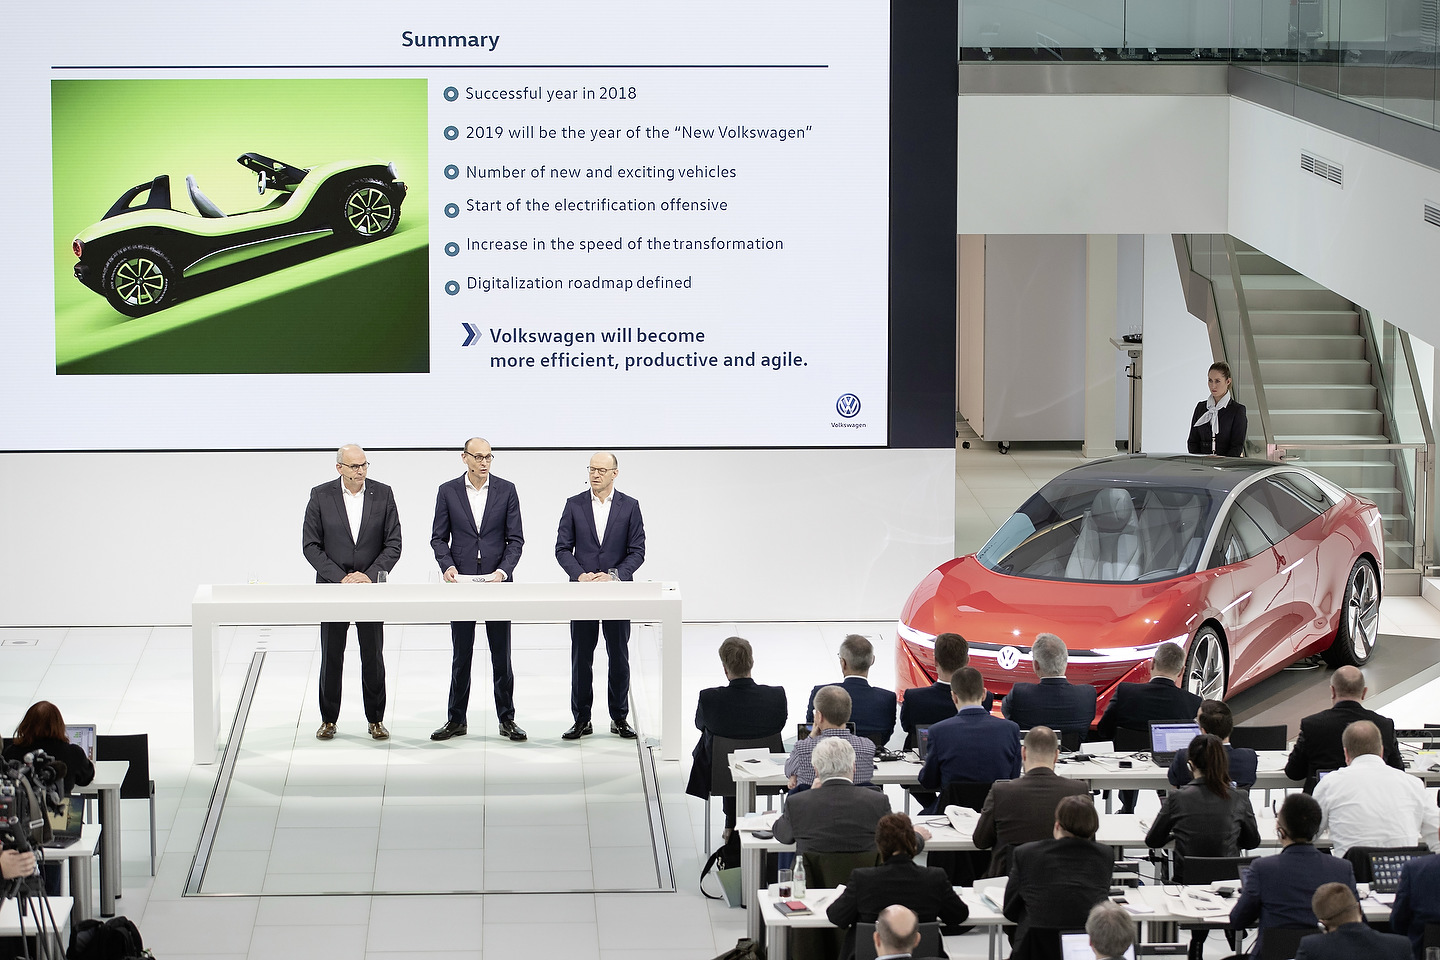 Jürgen Stackmann, Volkswagen Brand Board Member, responsible for Sales, Marketing and After Sales, Ralf Brandstätter, Volkswagen Brand Board Member, Chief Operating Officer (COO) of the Volkswagen brand, Dr. Arno Antlitz, Volkswagen Brand Board Member, responsible for Controlling and Accounting